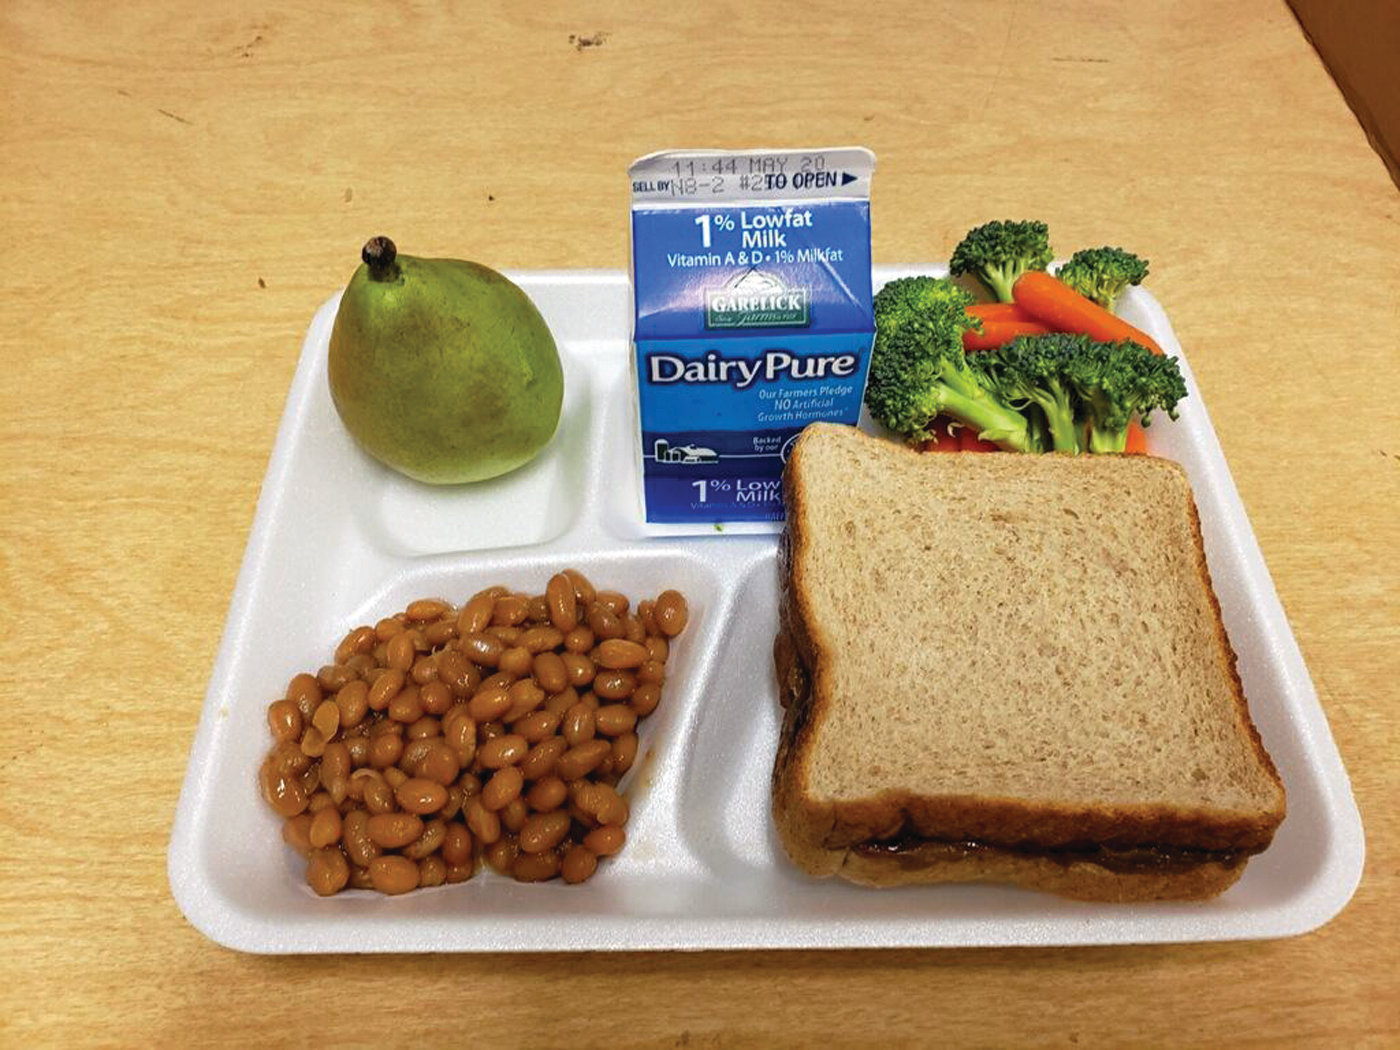 "SHAMEFUL LUNCH? A picture provided by the Warwick superintendent's office shows what a lunch with a sunflower butter and jelly sandwich would look like. The meal is a regularly offered item but was categorized by many as a ""shame"" tactic that would out kids who had incurred debt, whether it was their fault or not."